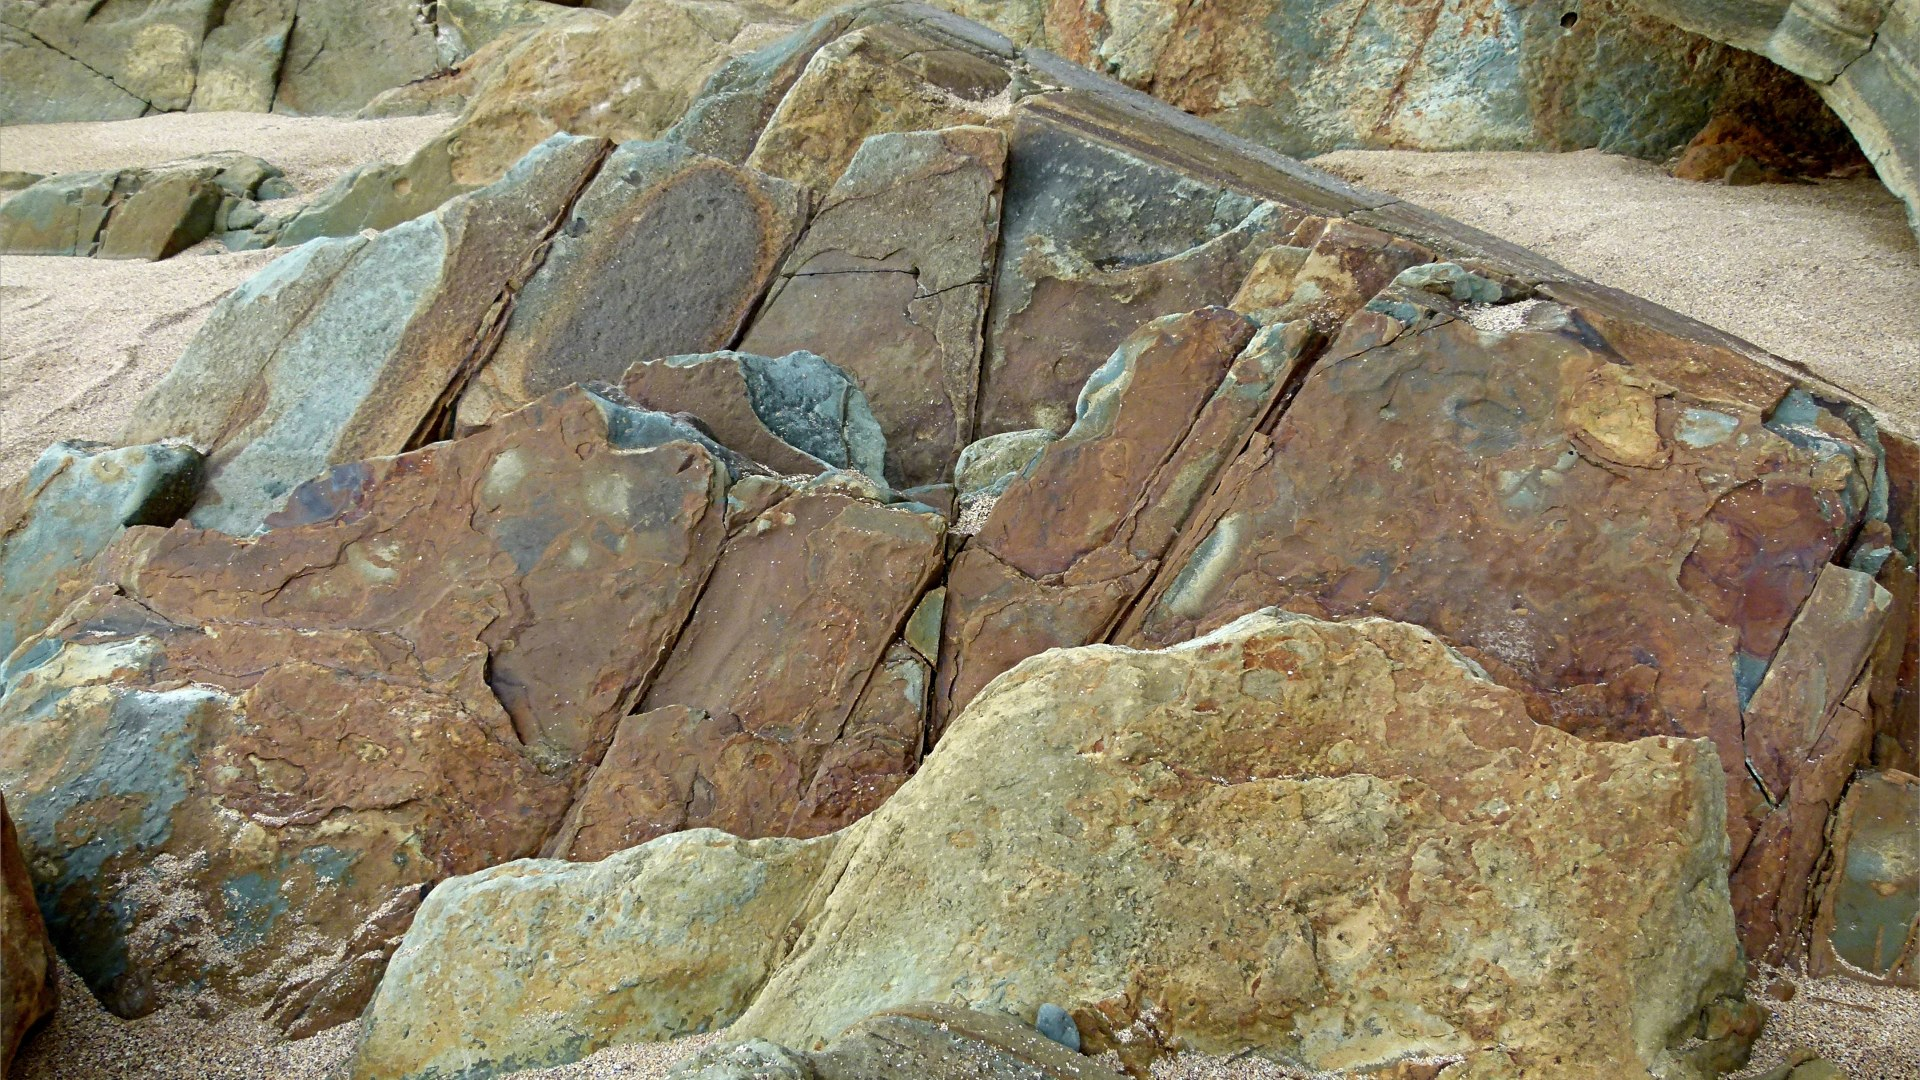 Natural patterns in rocks